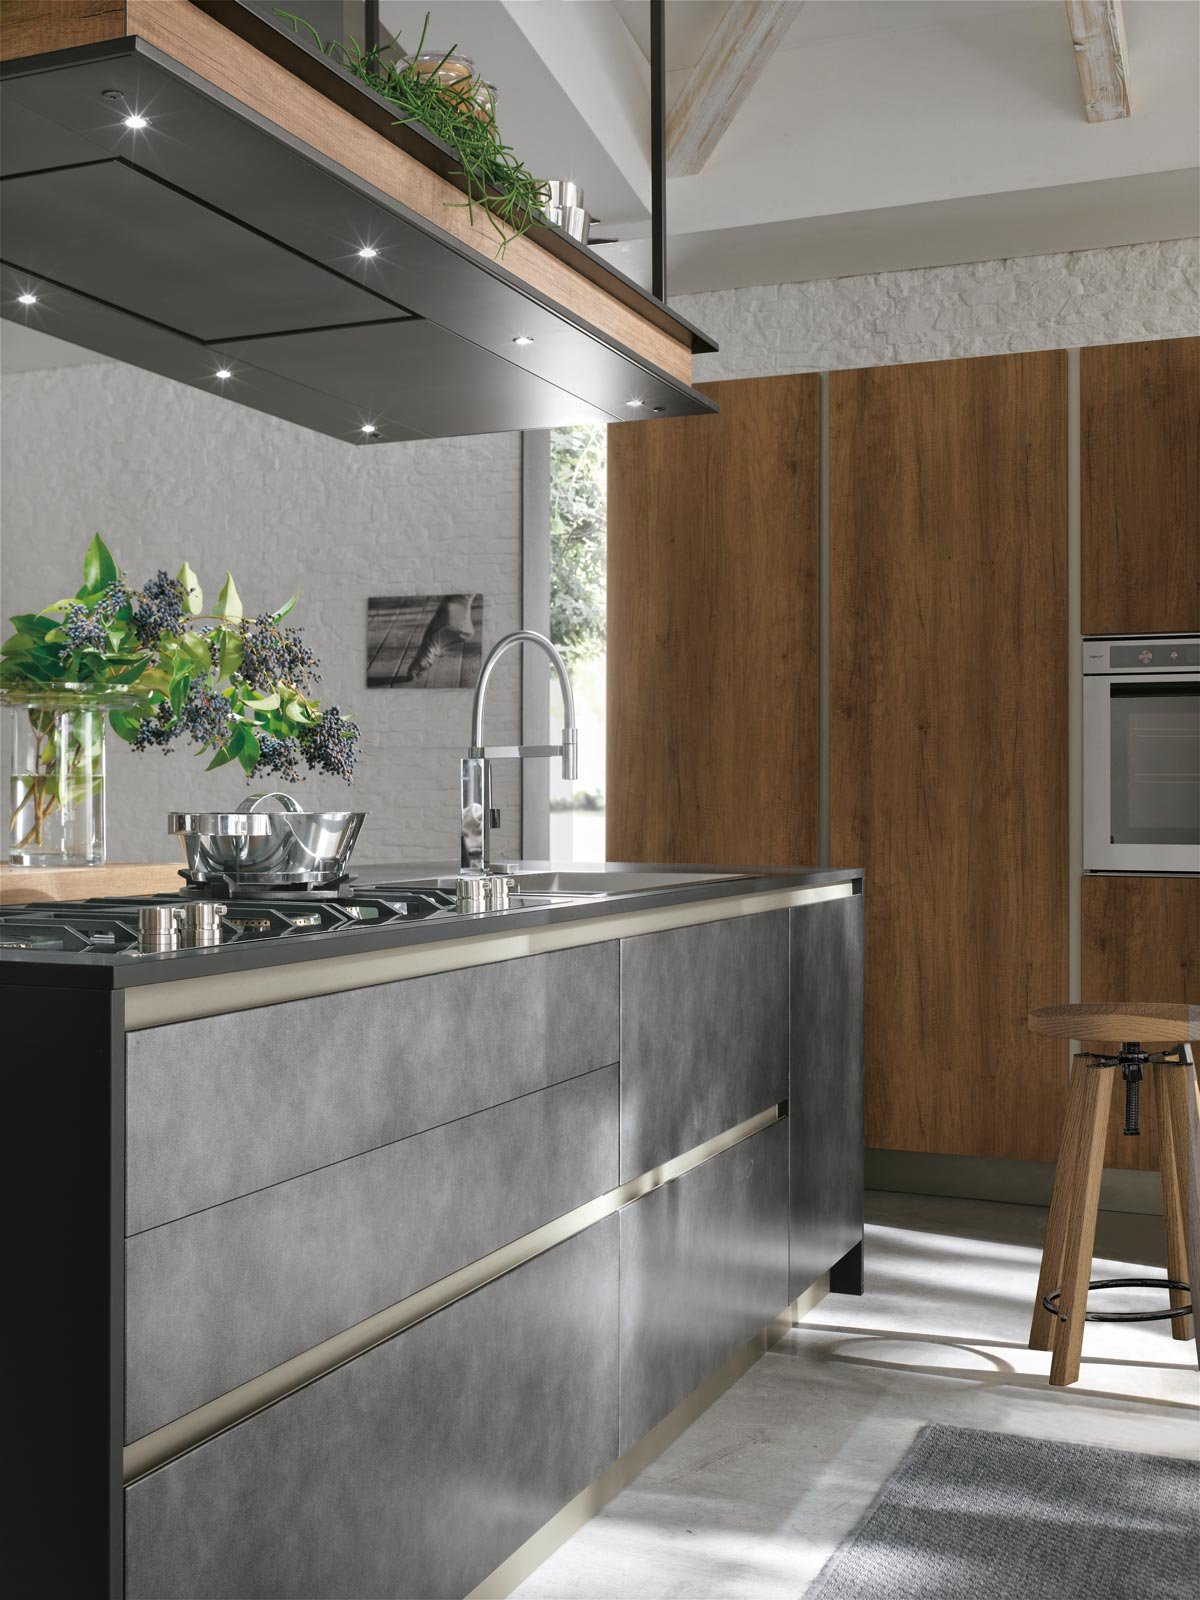 Eurocucina 2016 superfici soft touch per le nuove cucine for Cucina stosa infinity